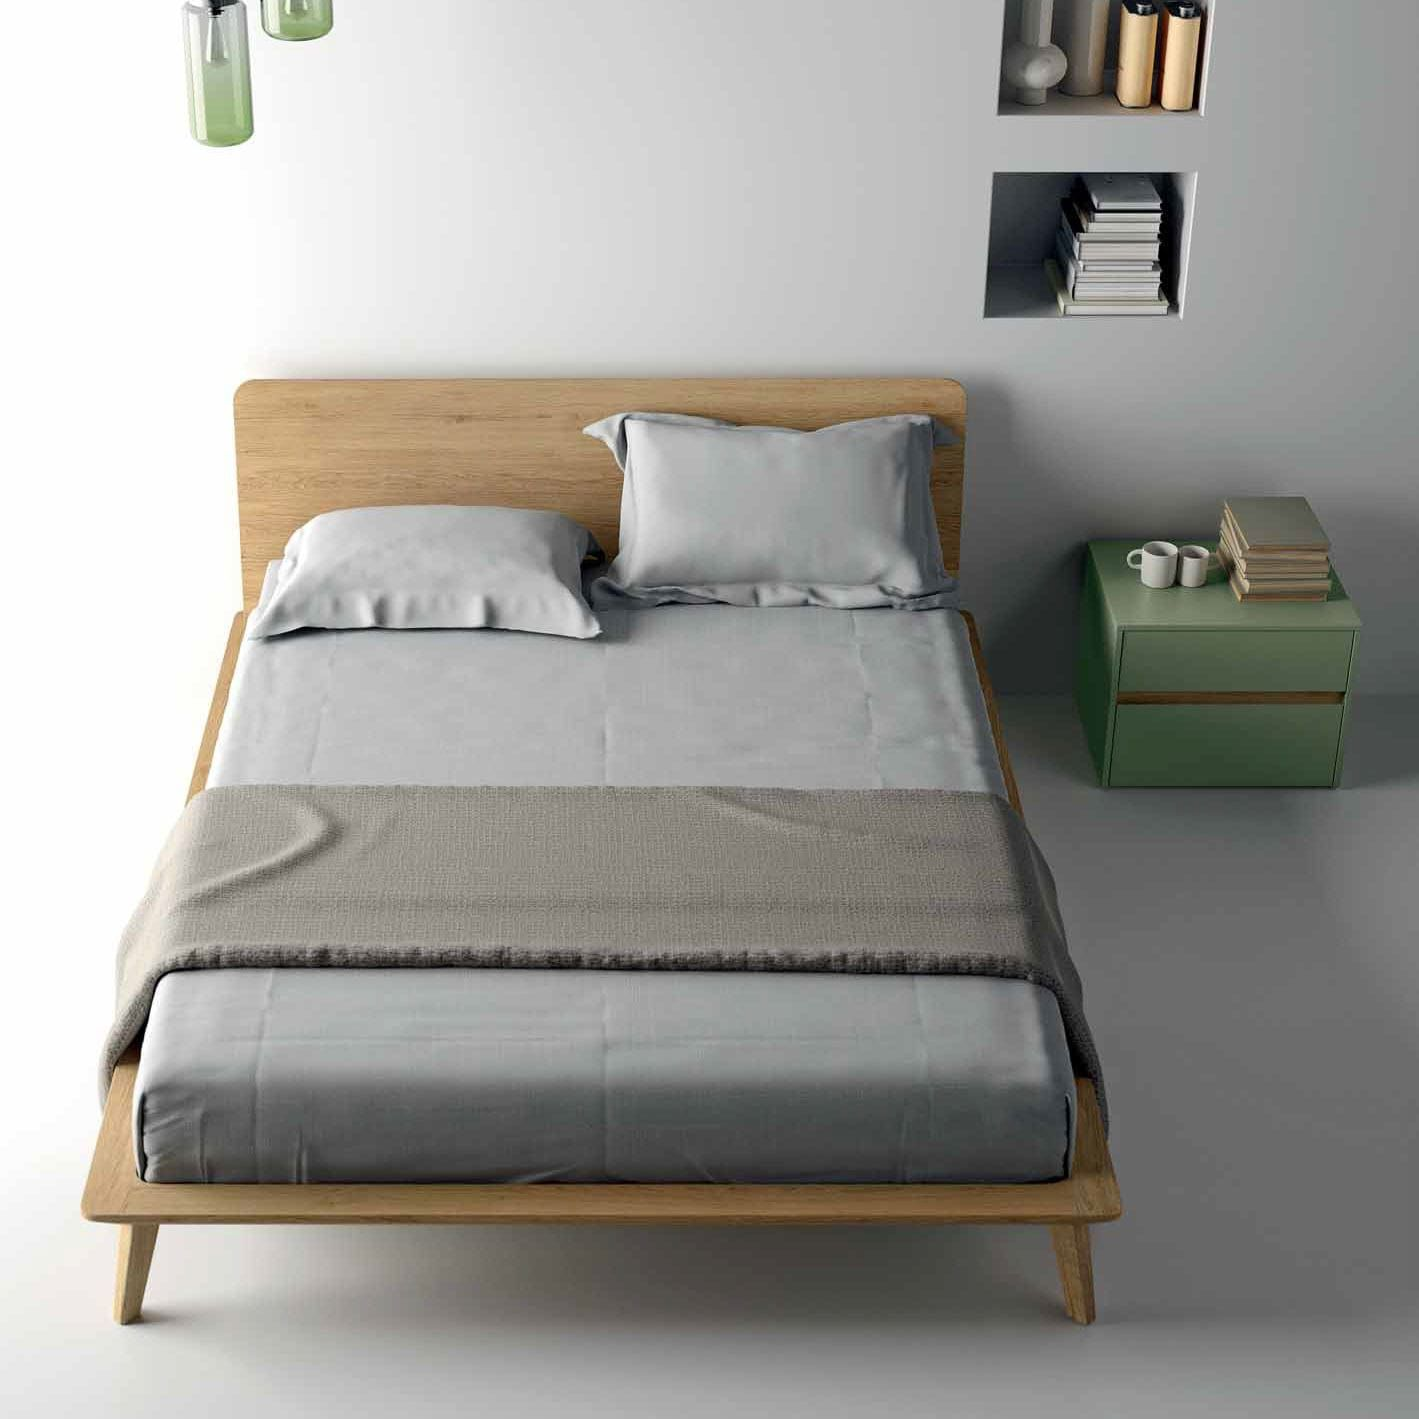 Dall Agnese Camere Da Letto.Double Bed Contemporary Oak With Headboard Easy Dall Agnese